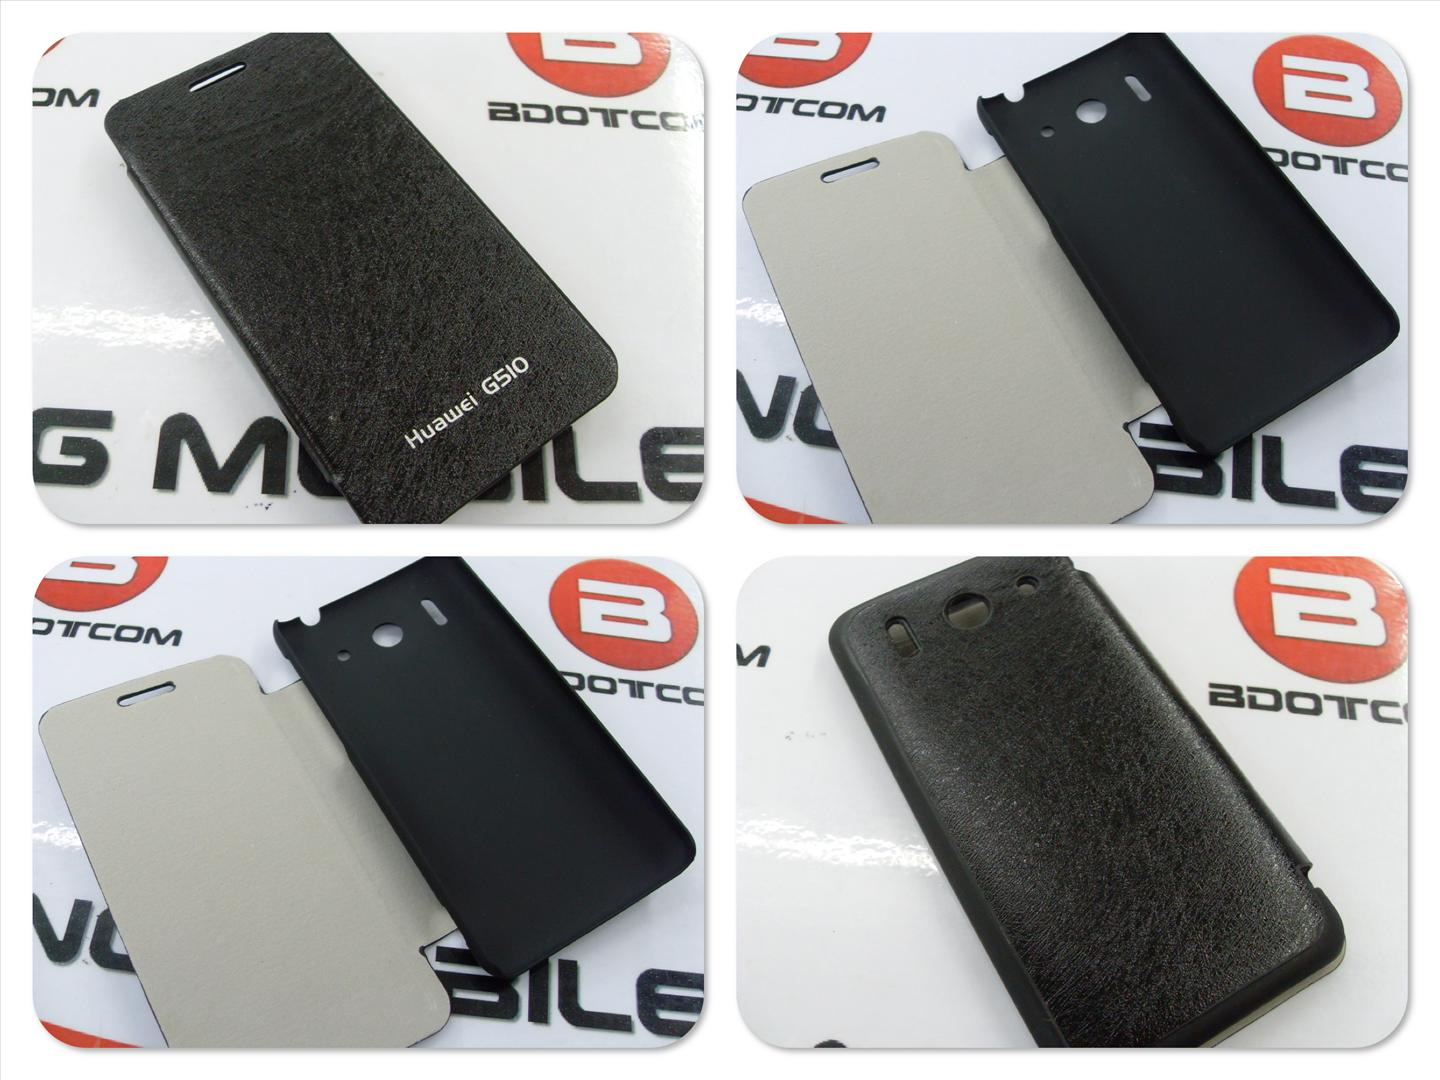 bdotcom = Huawei Ascend G510 leather case =